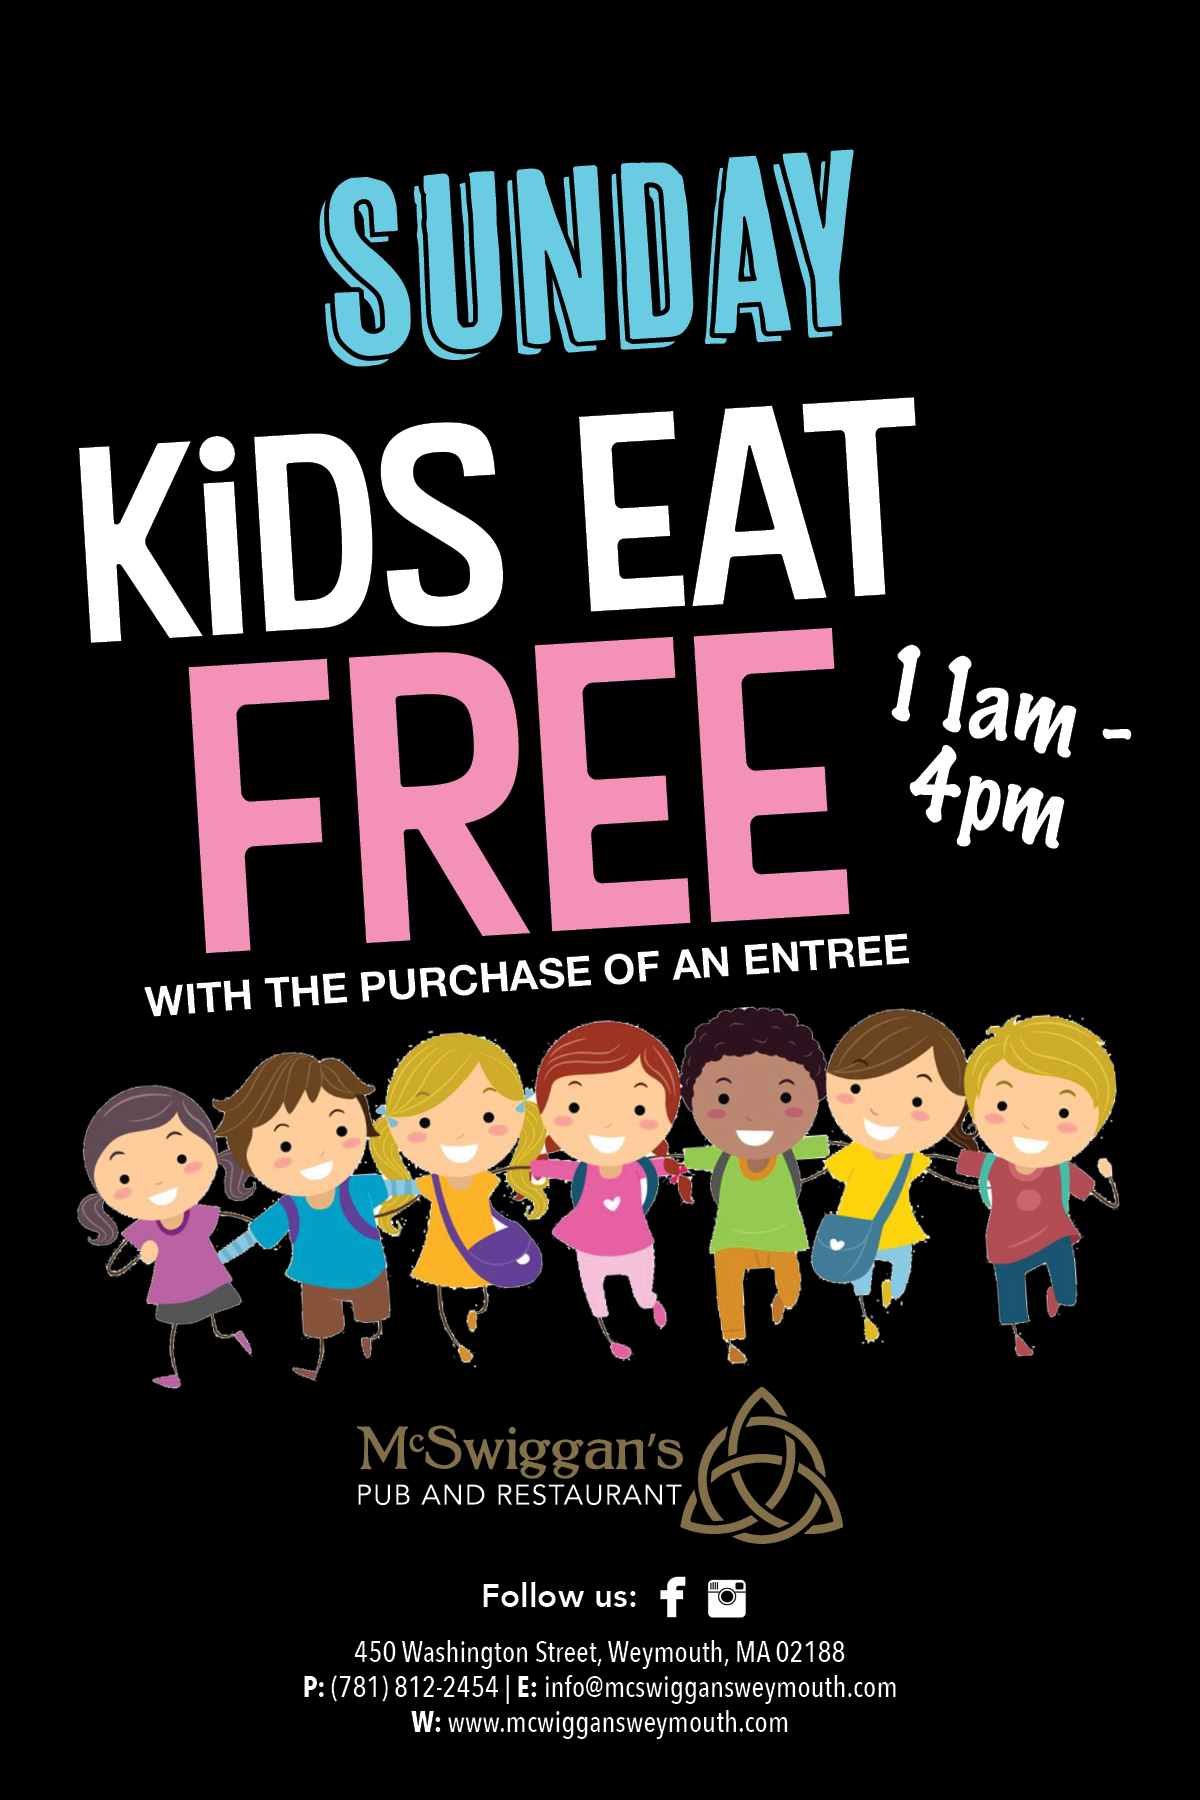 Sunday Kids Eat Free with purchase of an entree | 11am - 4pm